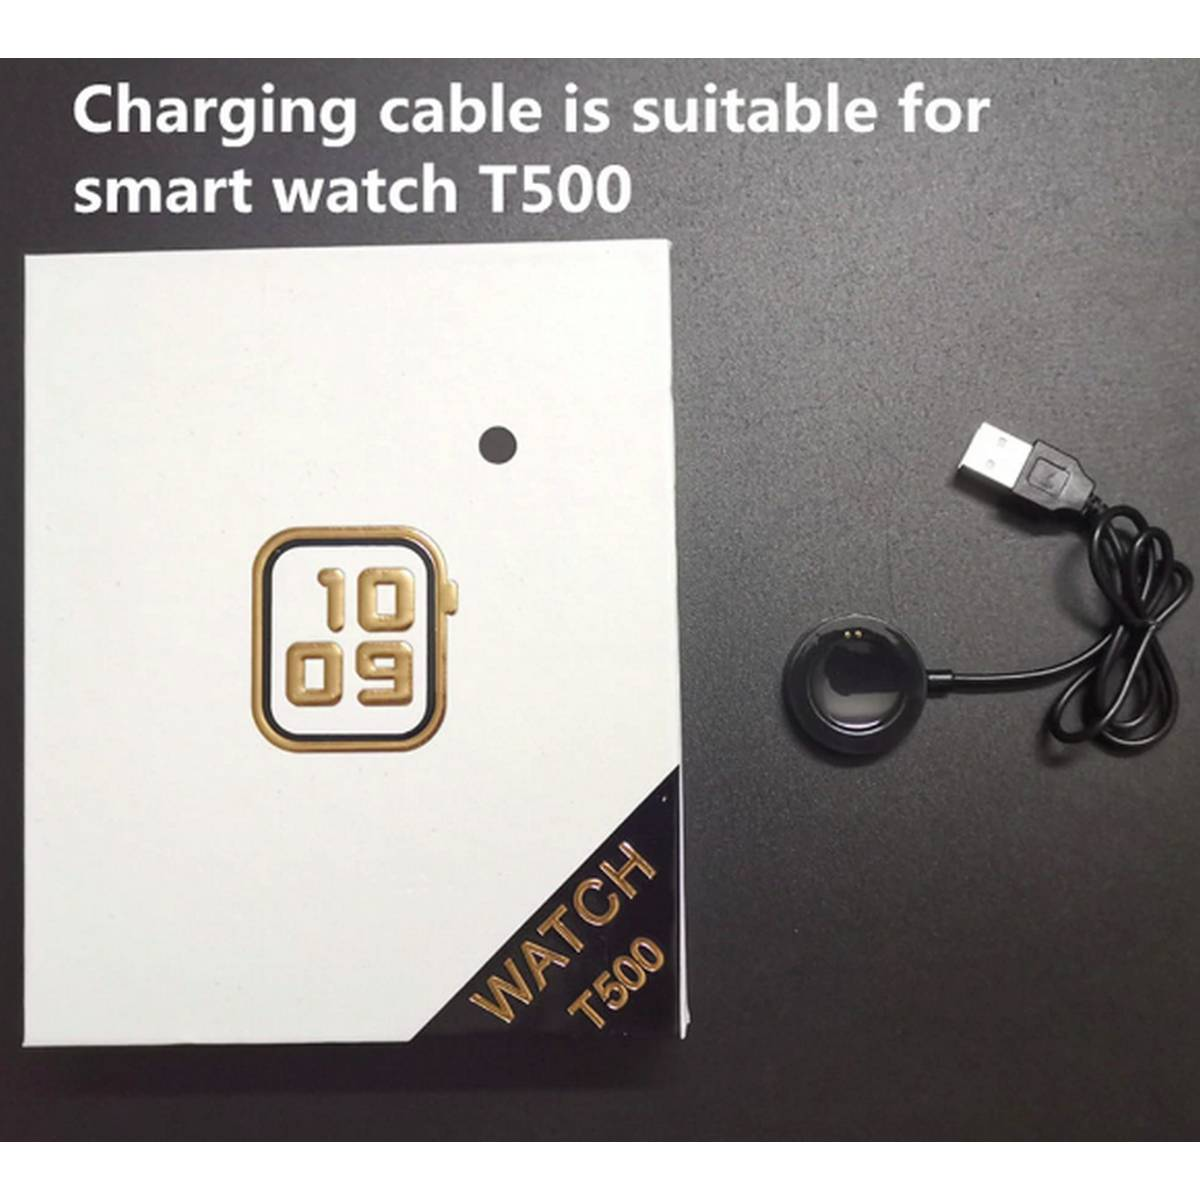 Smart Watch T500 Watch Charger Magnetic Suction Base Replacement Charging Cable USB Interface Power Charger Adapter For T500 Plus / T500 / T55 / T5s /  F18 / X7 / X6 Round Smartwatch